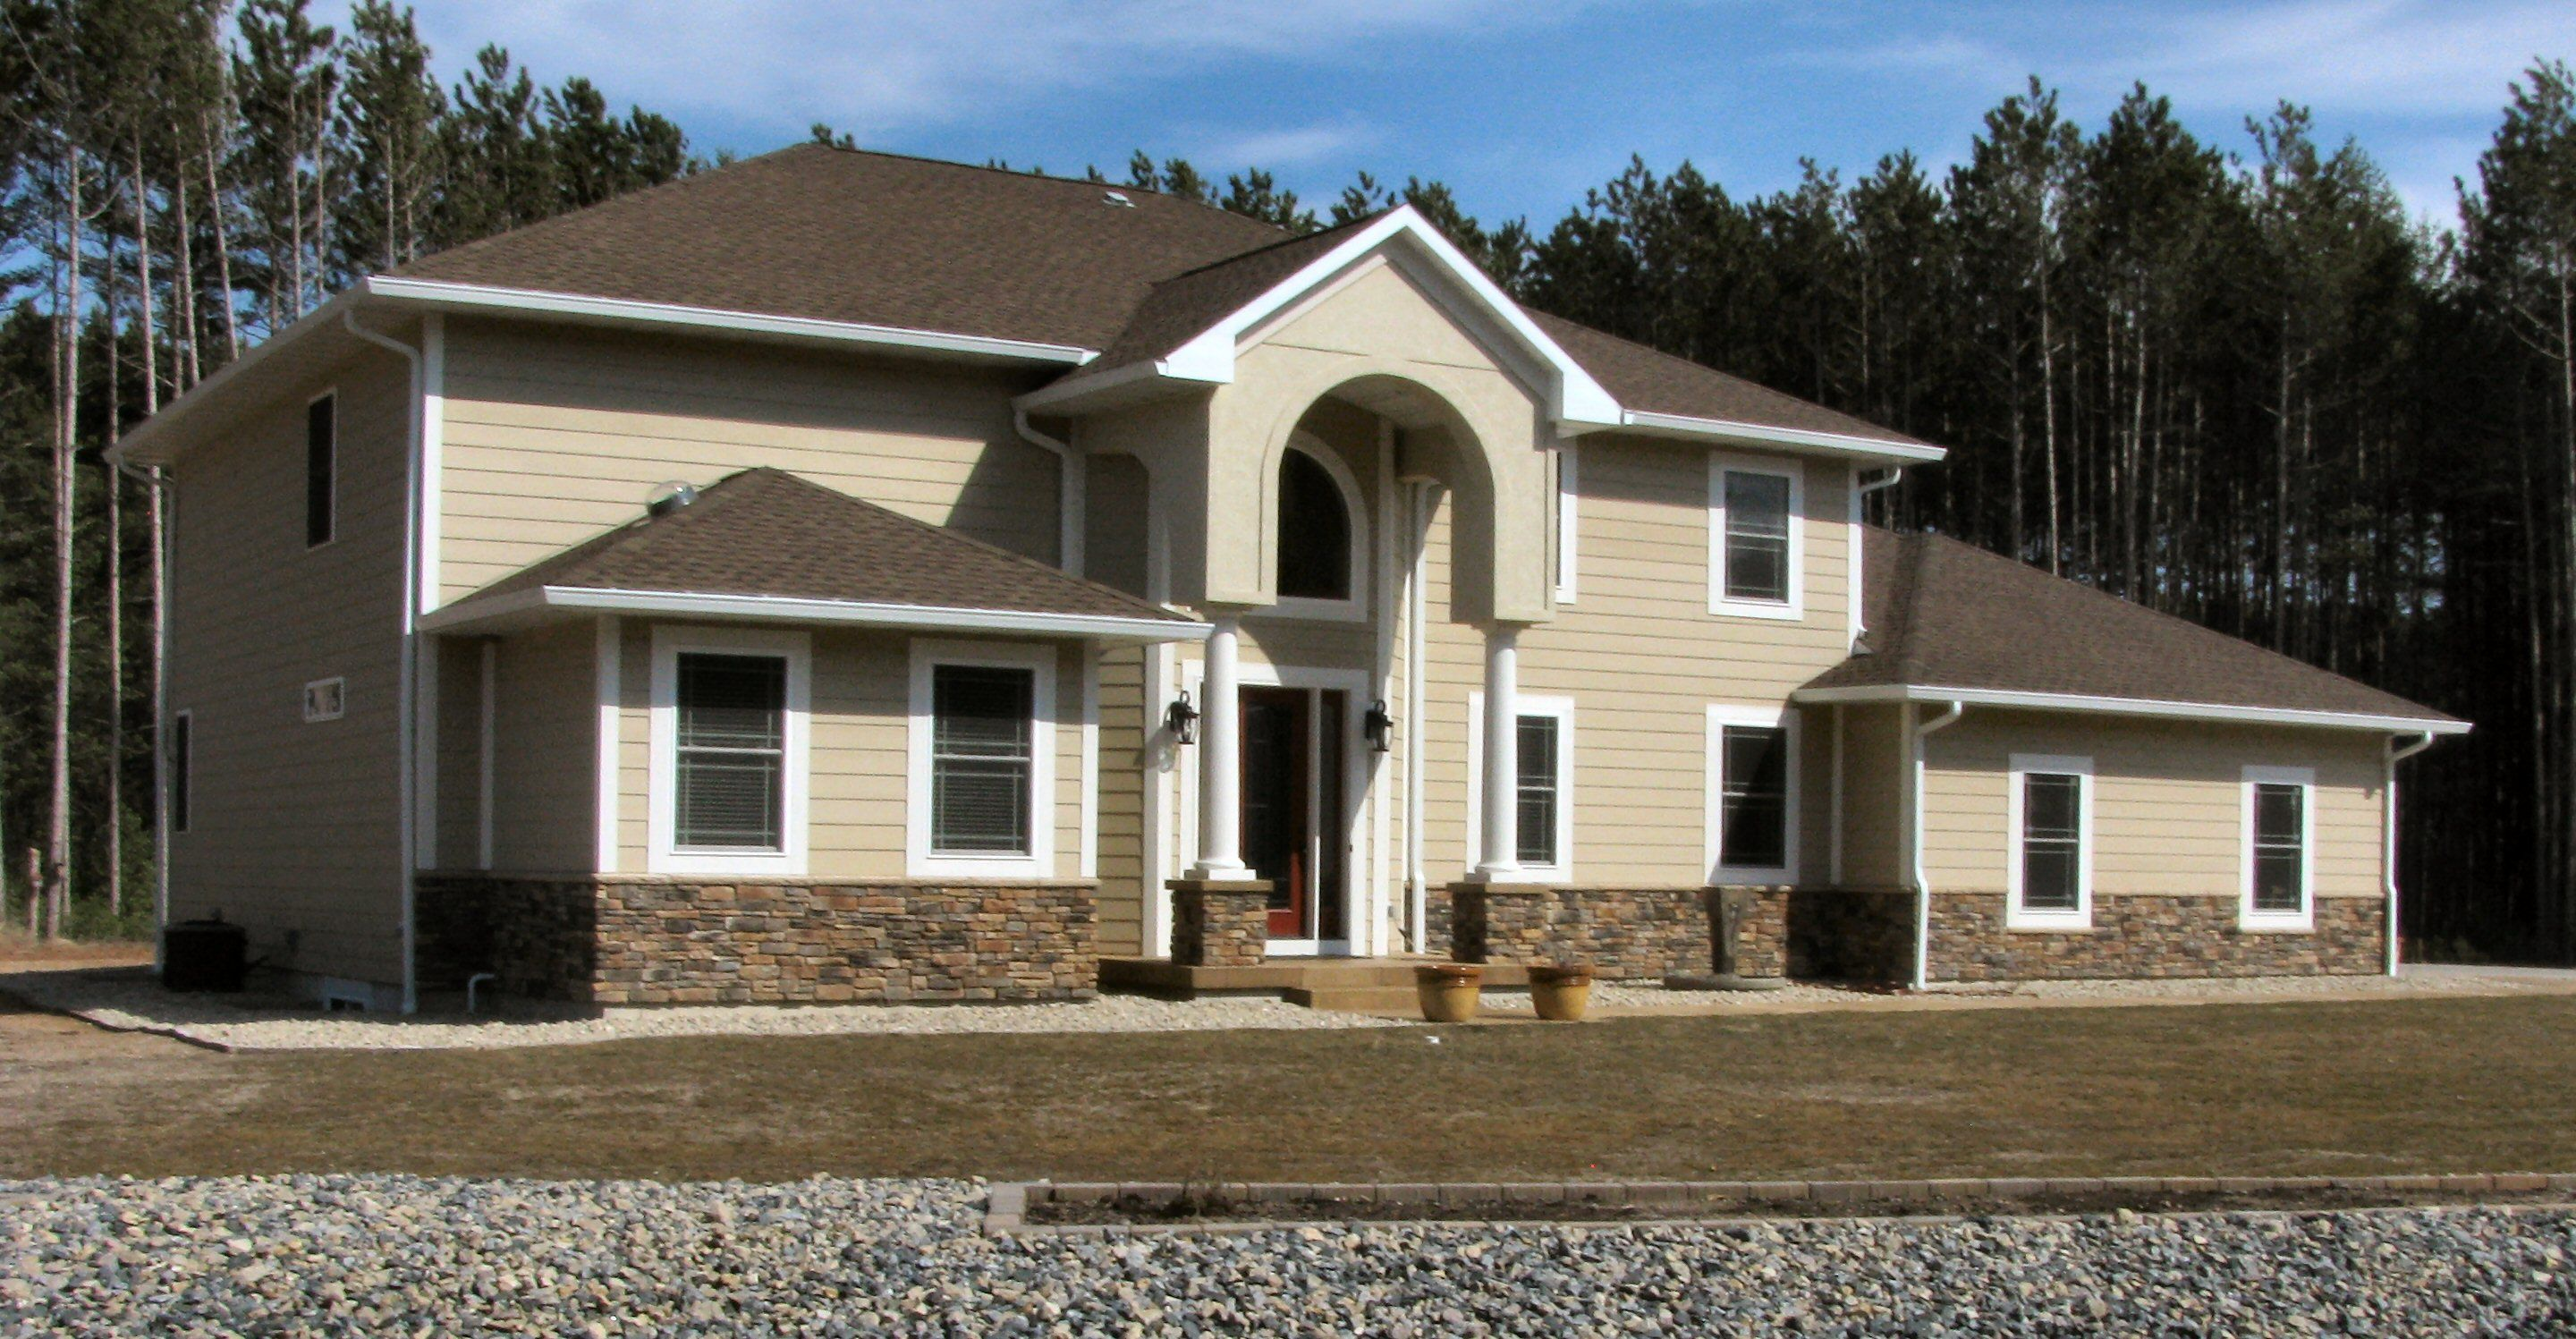 Custom built 3 516 sq ft two story in stevens point for Houses with stucco and siding